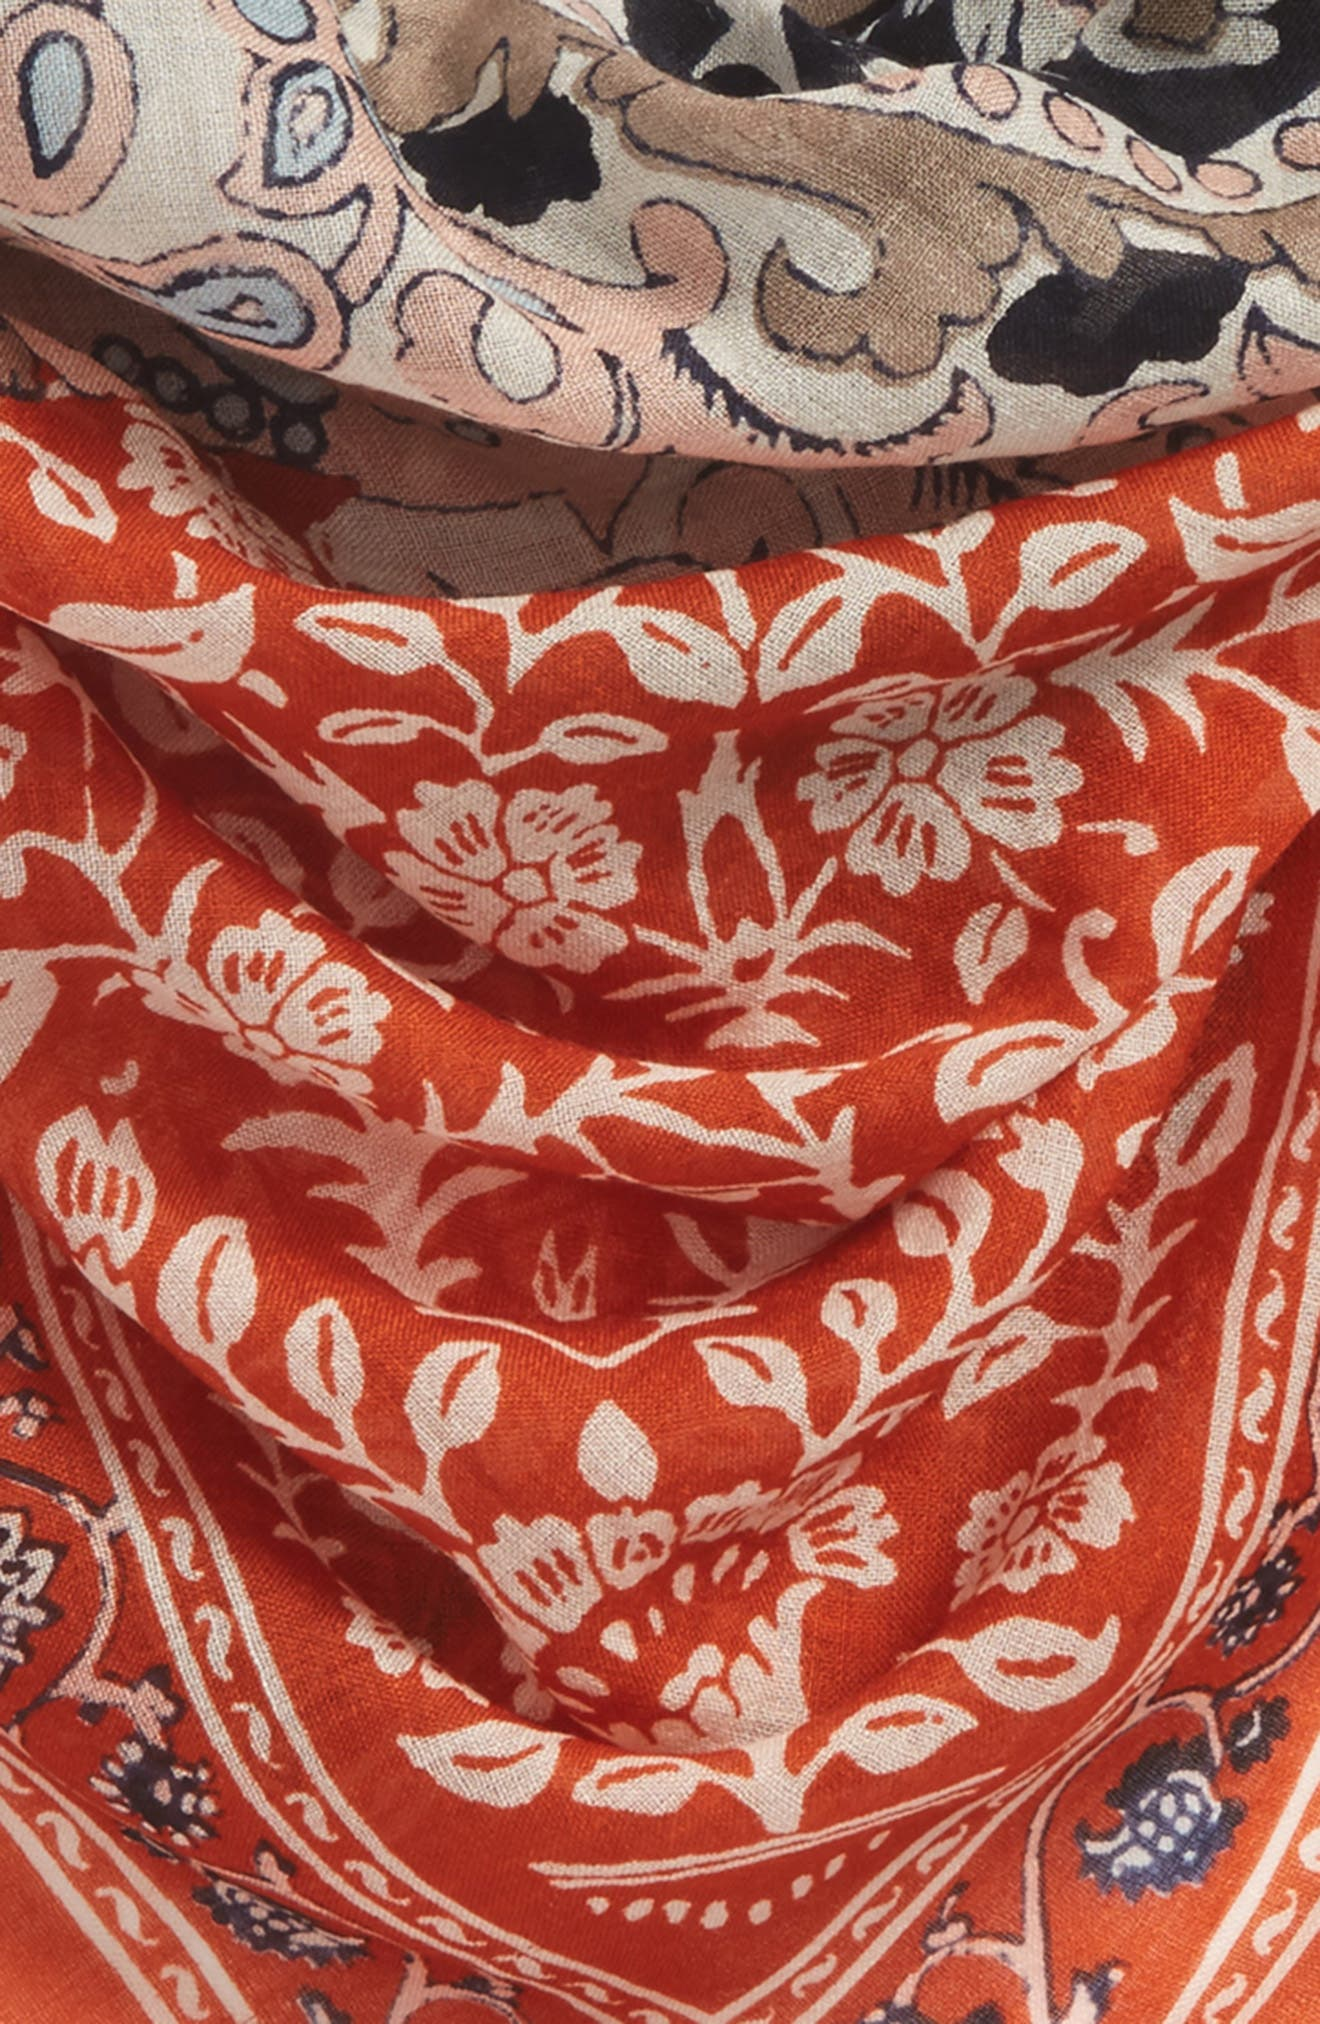 MADEWELL, Greta Paisley Square Scarf, Alternate thumbnail 4, color, RUSTY TORCH MULTI